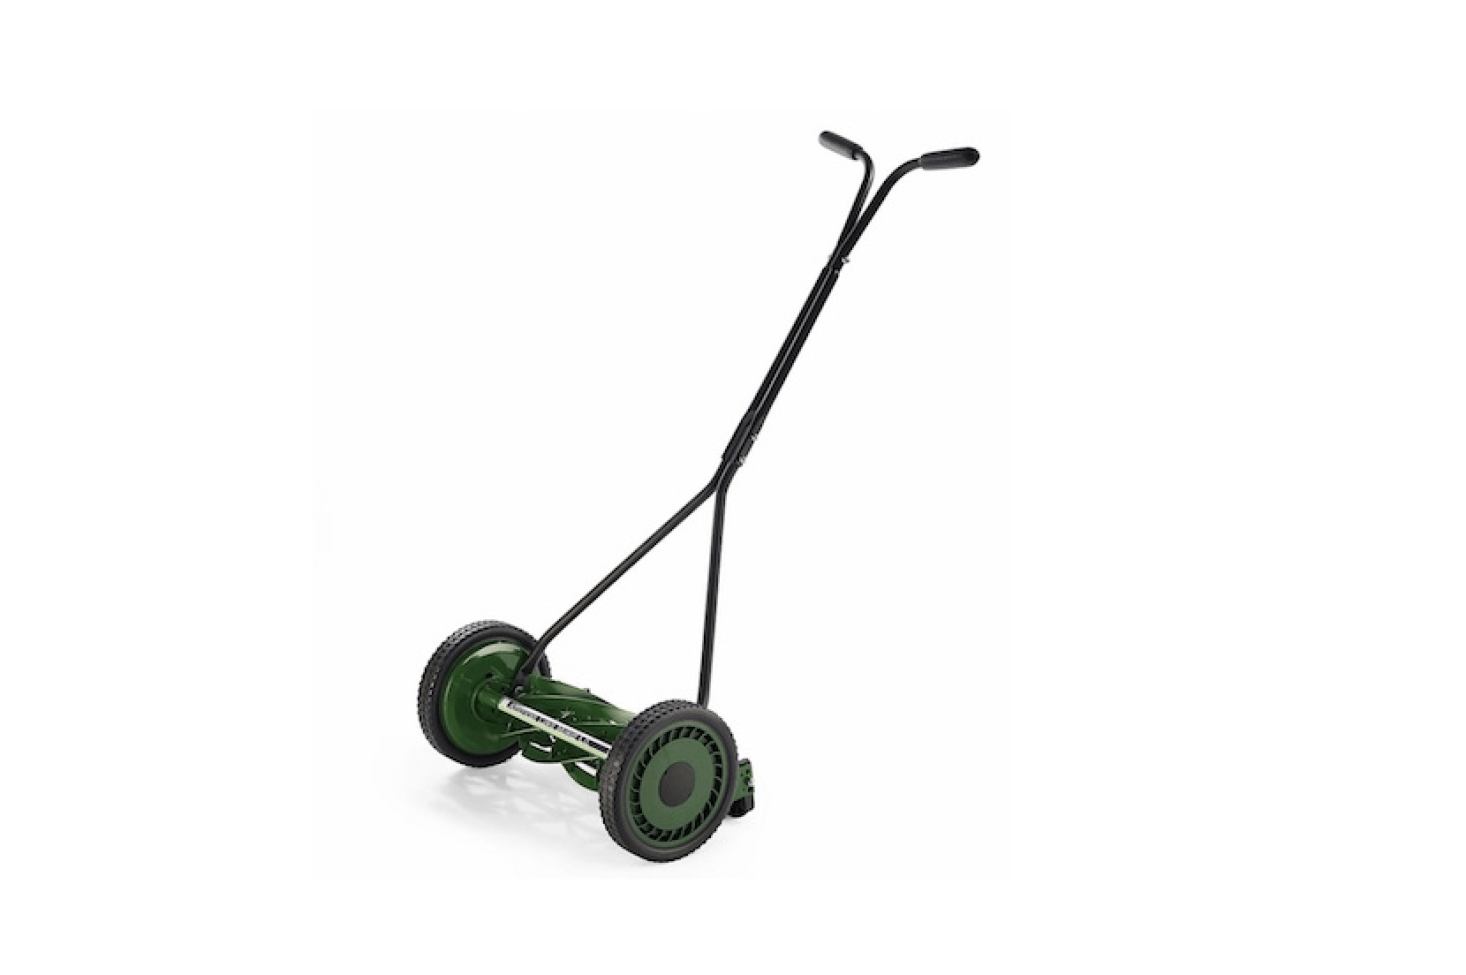 Made of powder-coated steel, aManually Operated Lawnmower has rubber-coated treads and measures about 44.5 inches high. It is€3 at Manufactum.